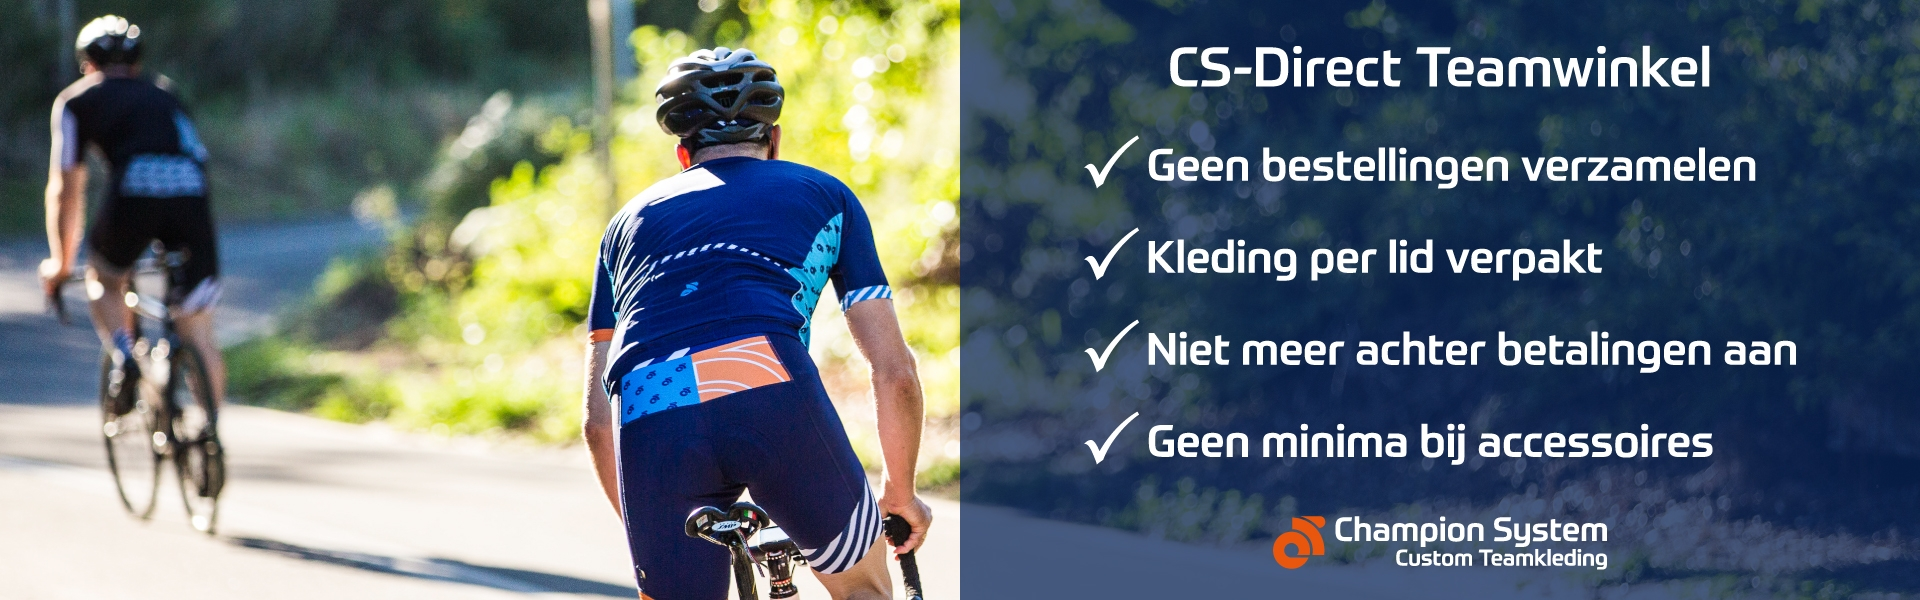 CS Direct teamwinkel